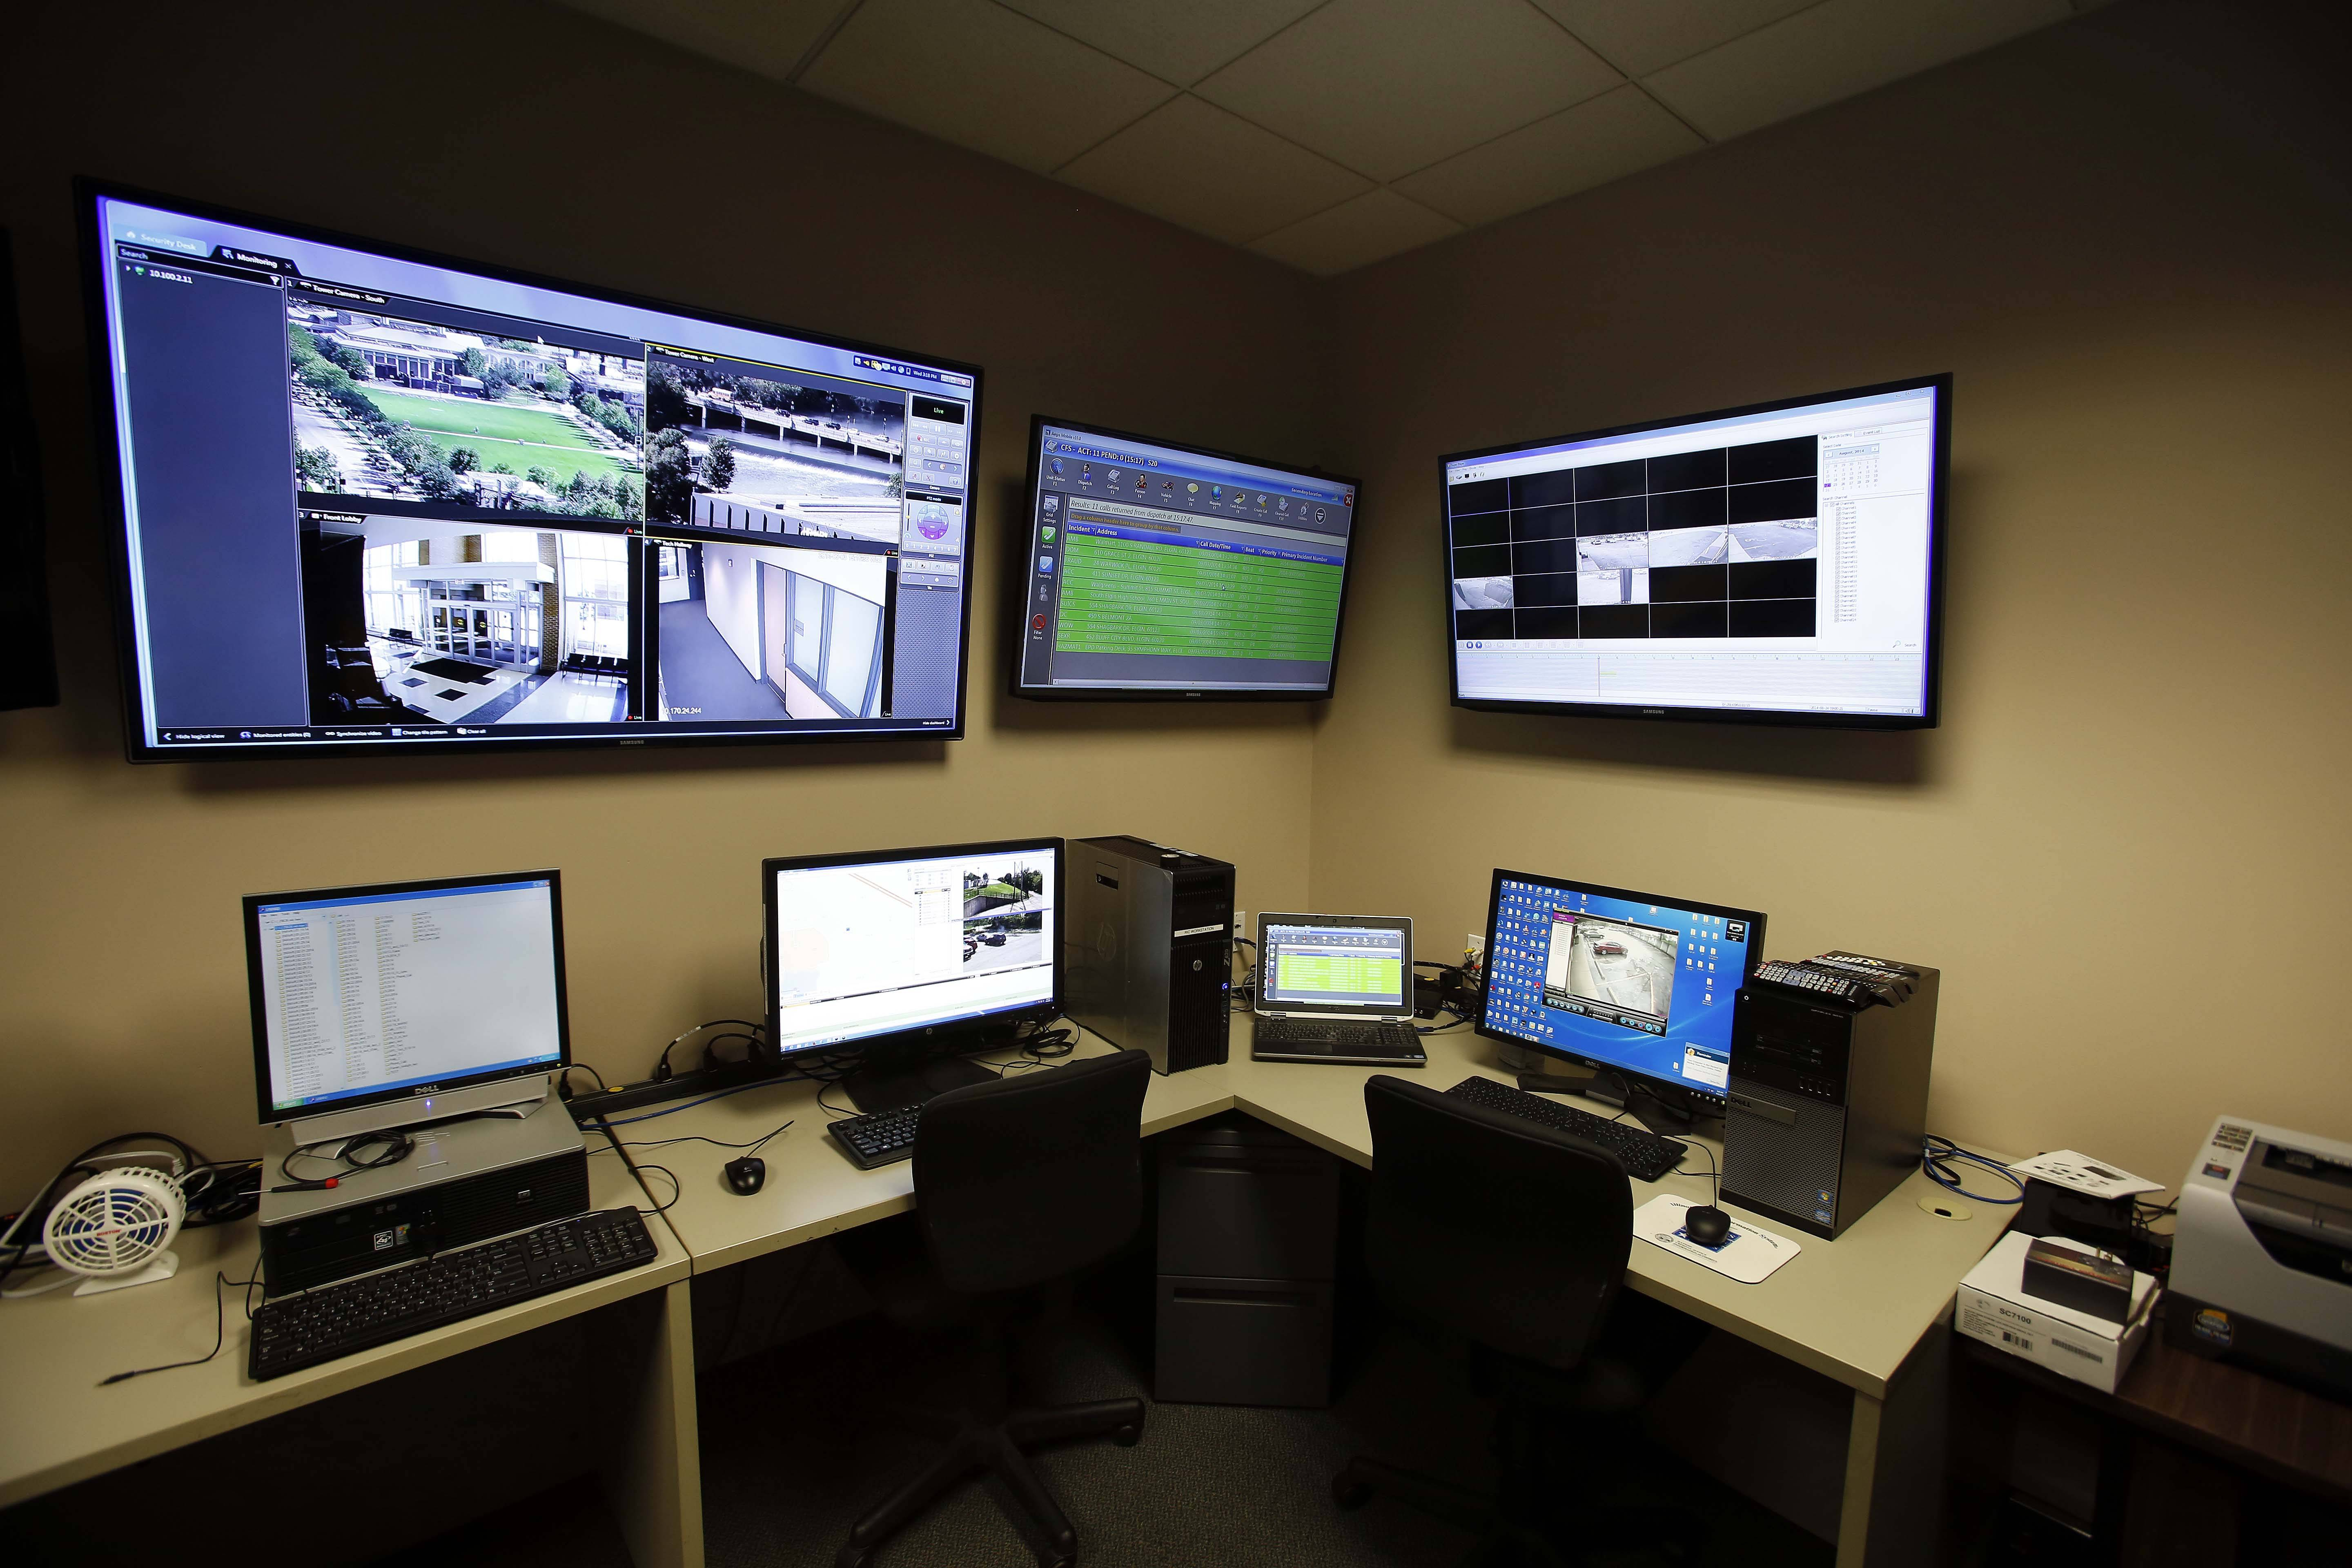 The Elgin Police Department is planning to buy a Real Time Information Center from Motorola that will allow for real-time viewing of cameras in public places such as Festival Park.